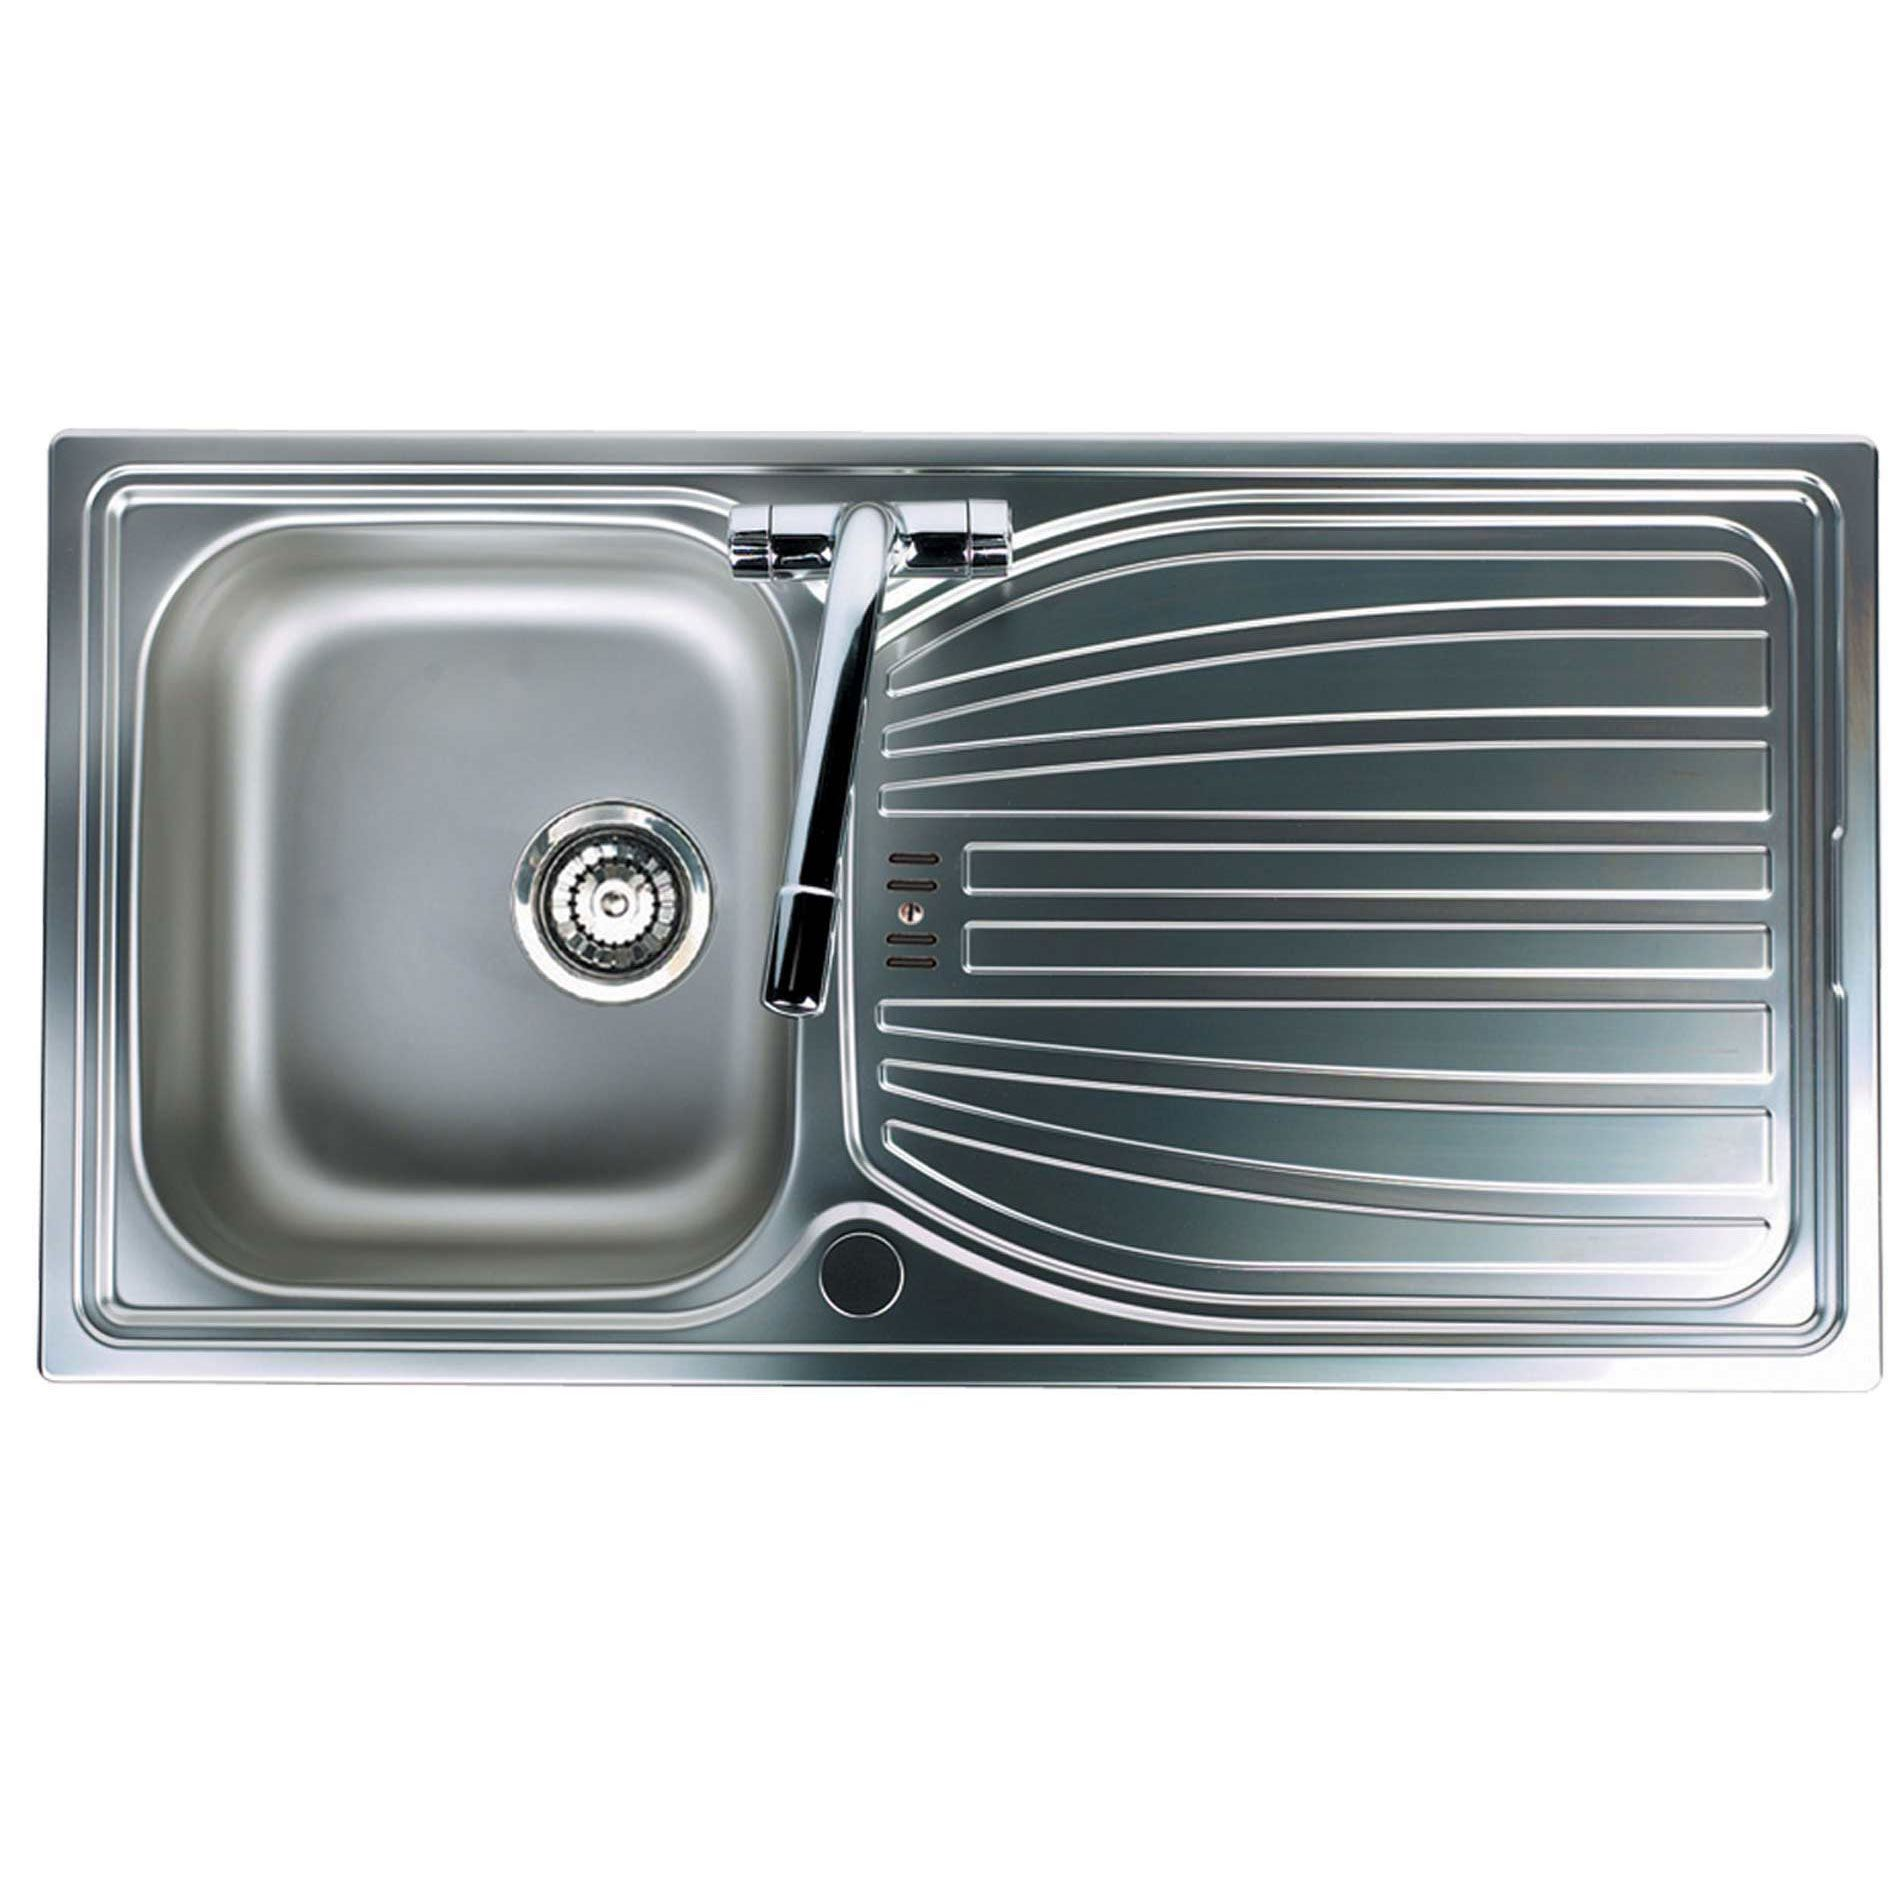 exclusive sinks product heritage x steel double kitchen fbsg stainless ksh bowl